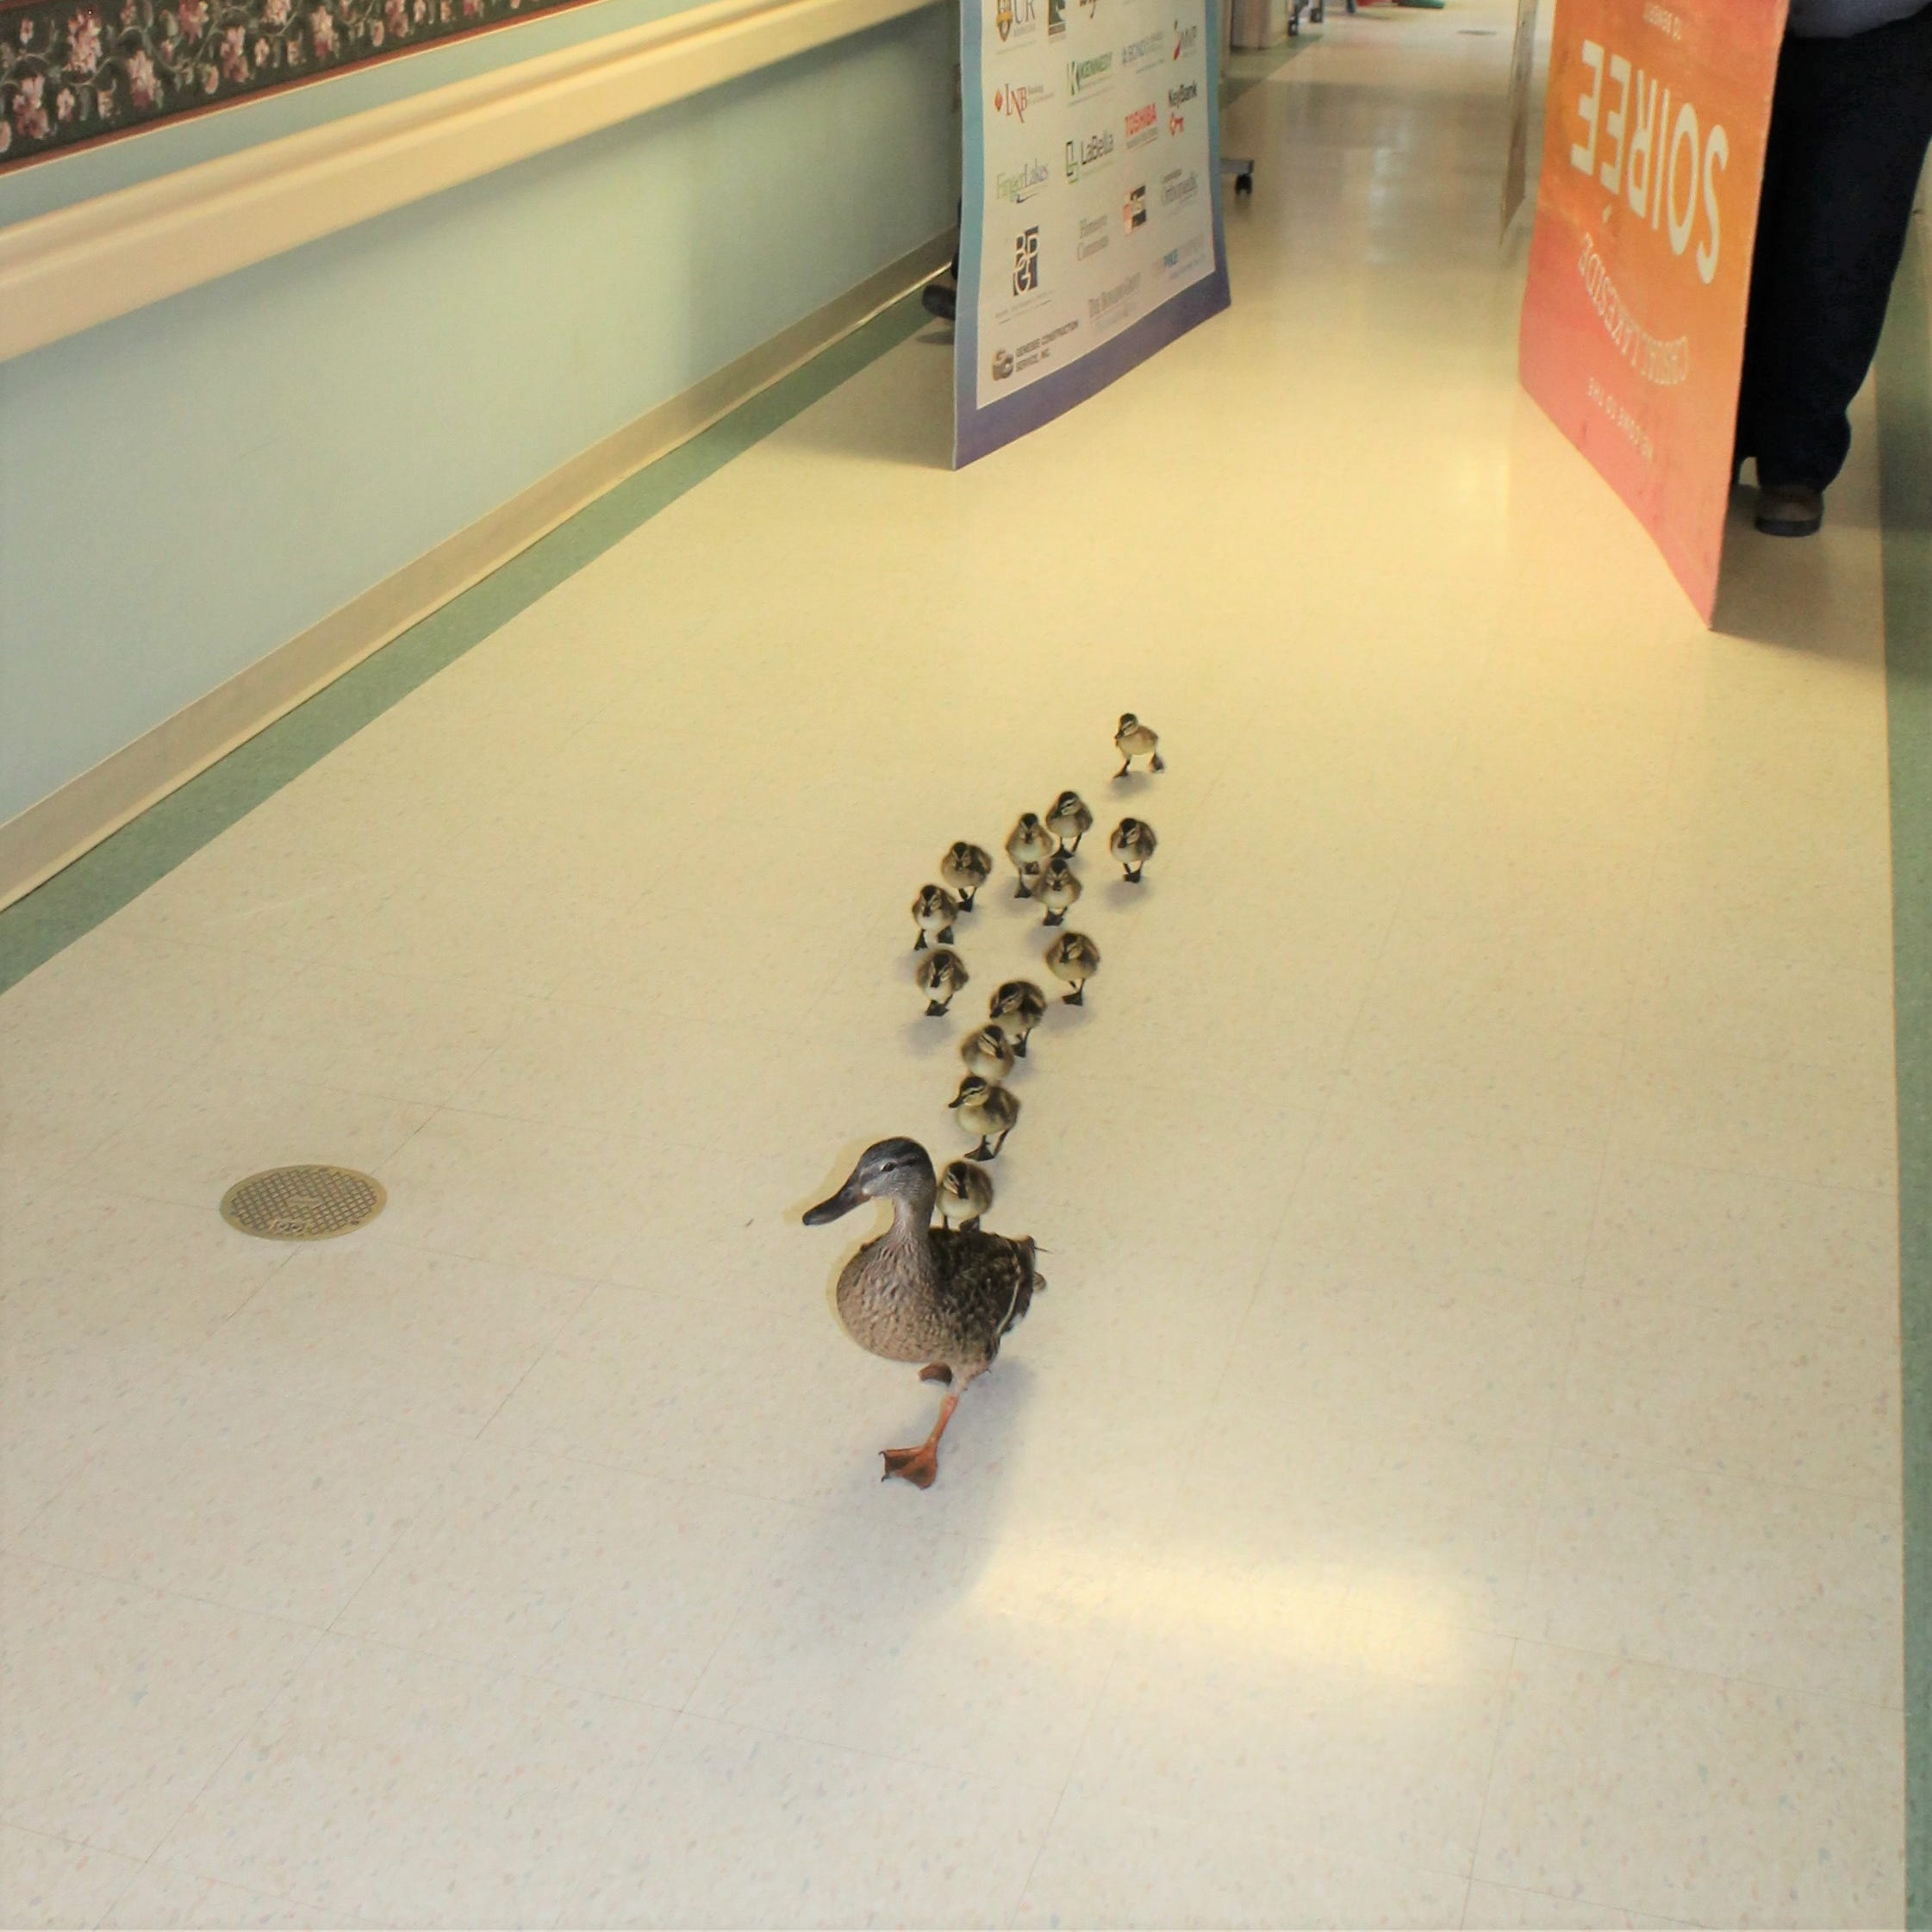 Mama duck parades ducklings down nursing home hallway in Canandaigua. And the story goes viral.